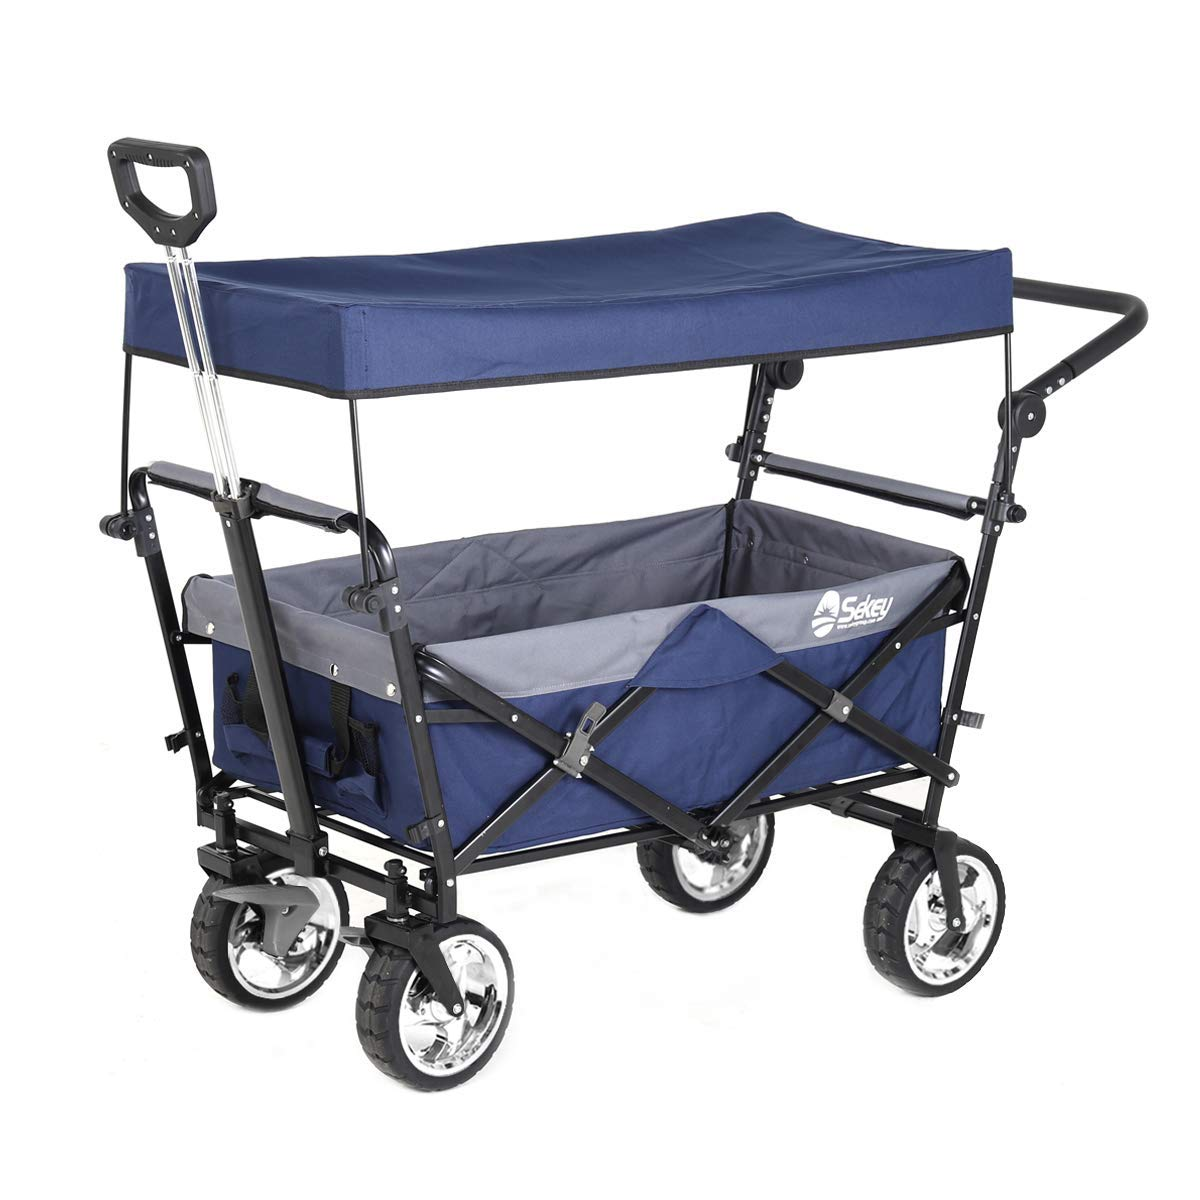 Sekey Folding Wagon with Canopy Collapsible Outdoor Utility Wagon with Telescopic Push Bar Camping Wagon , Heavy-duty Wheels with Brakes, Blue